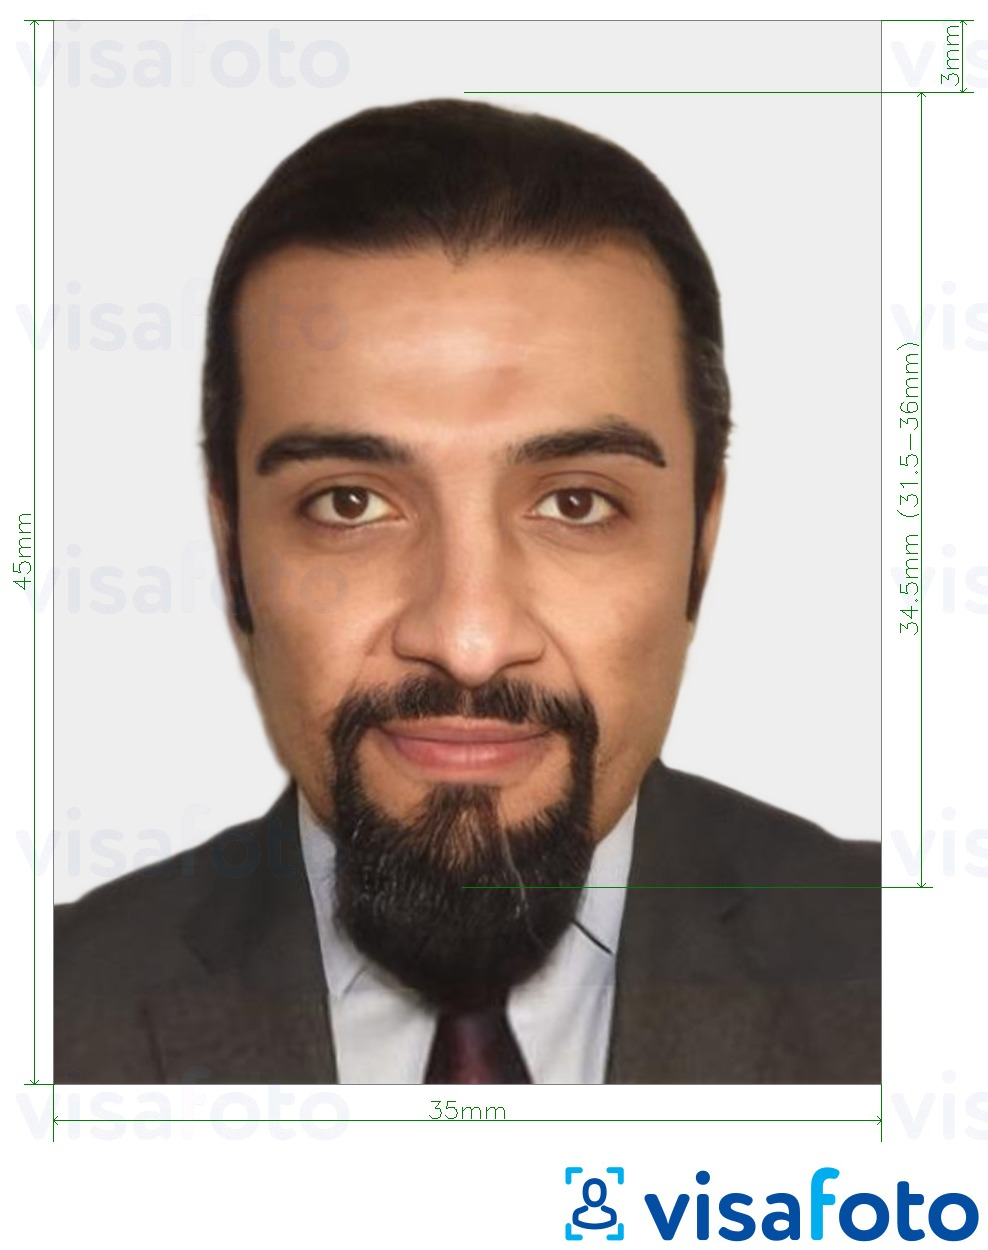 Example of photo for Mauritania passport 35x45 mm (3.5x4.5 cm) with exact size specification